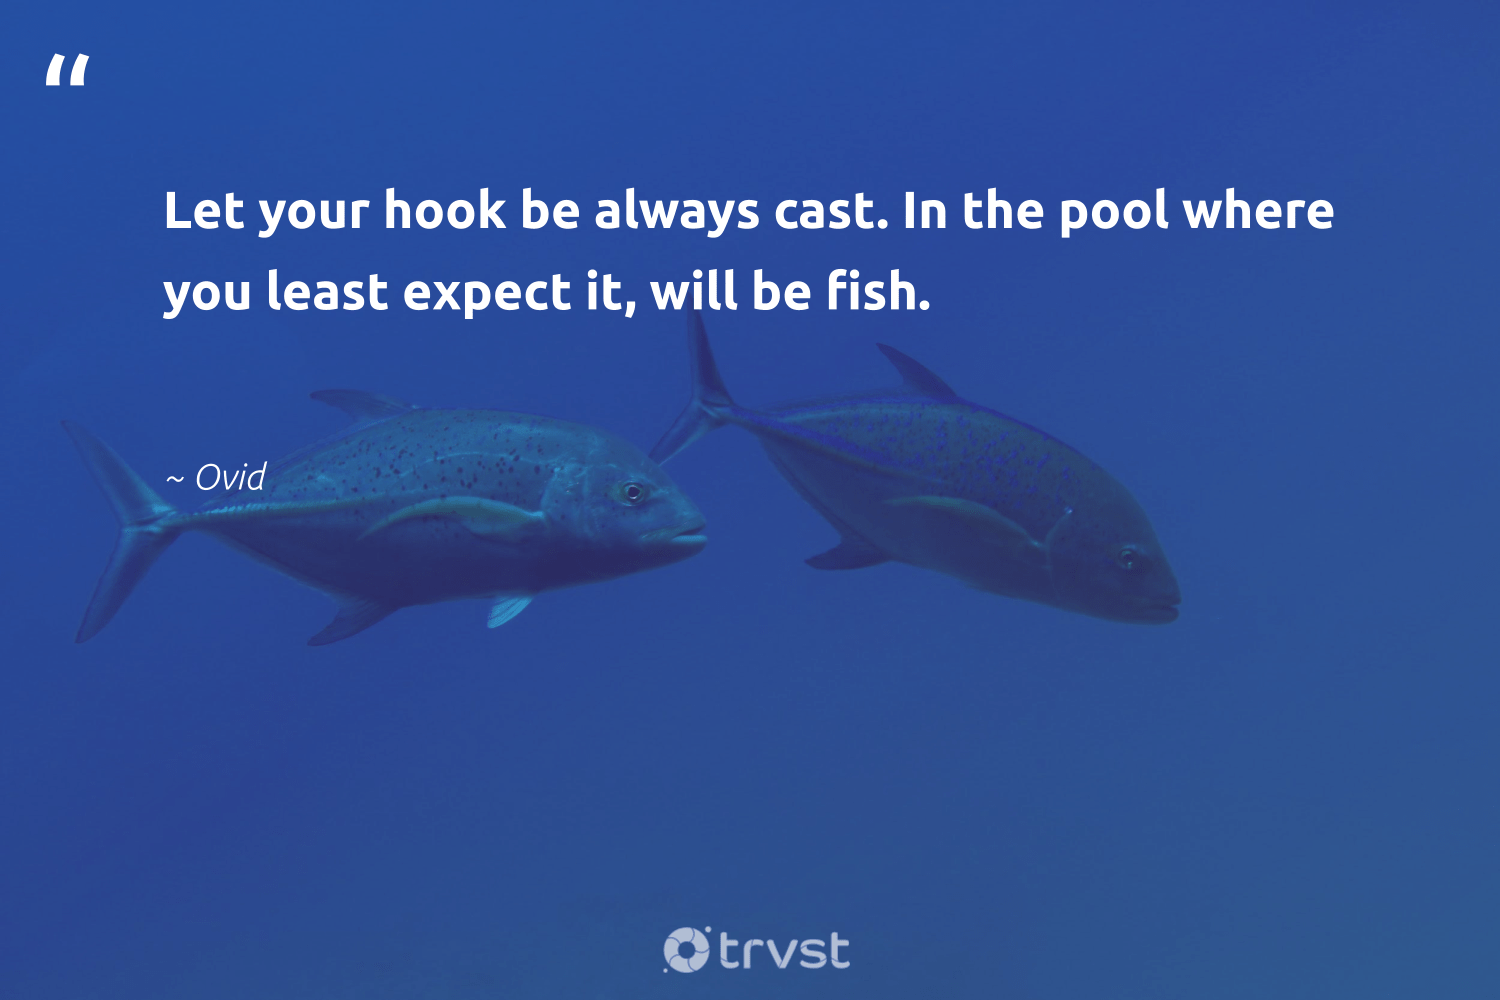 """""""Let your hook be always cast. In the pool where you least expect it, will be fish.""""  - Ovid #trvst #quotes #fish #nature #ecoconscious #biodiversity #bethechange #sustainability #beinspired #oceans #dosomething #protecttheoceans"""